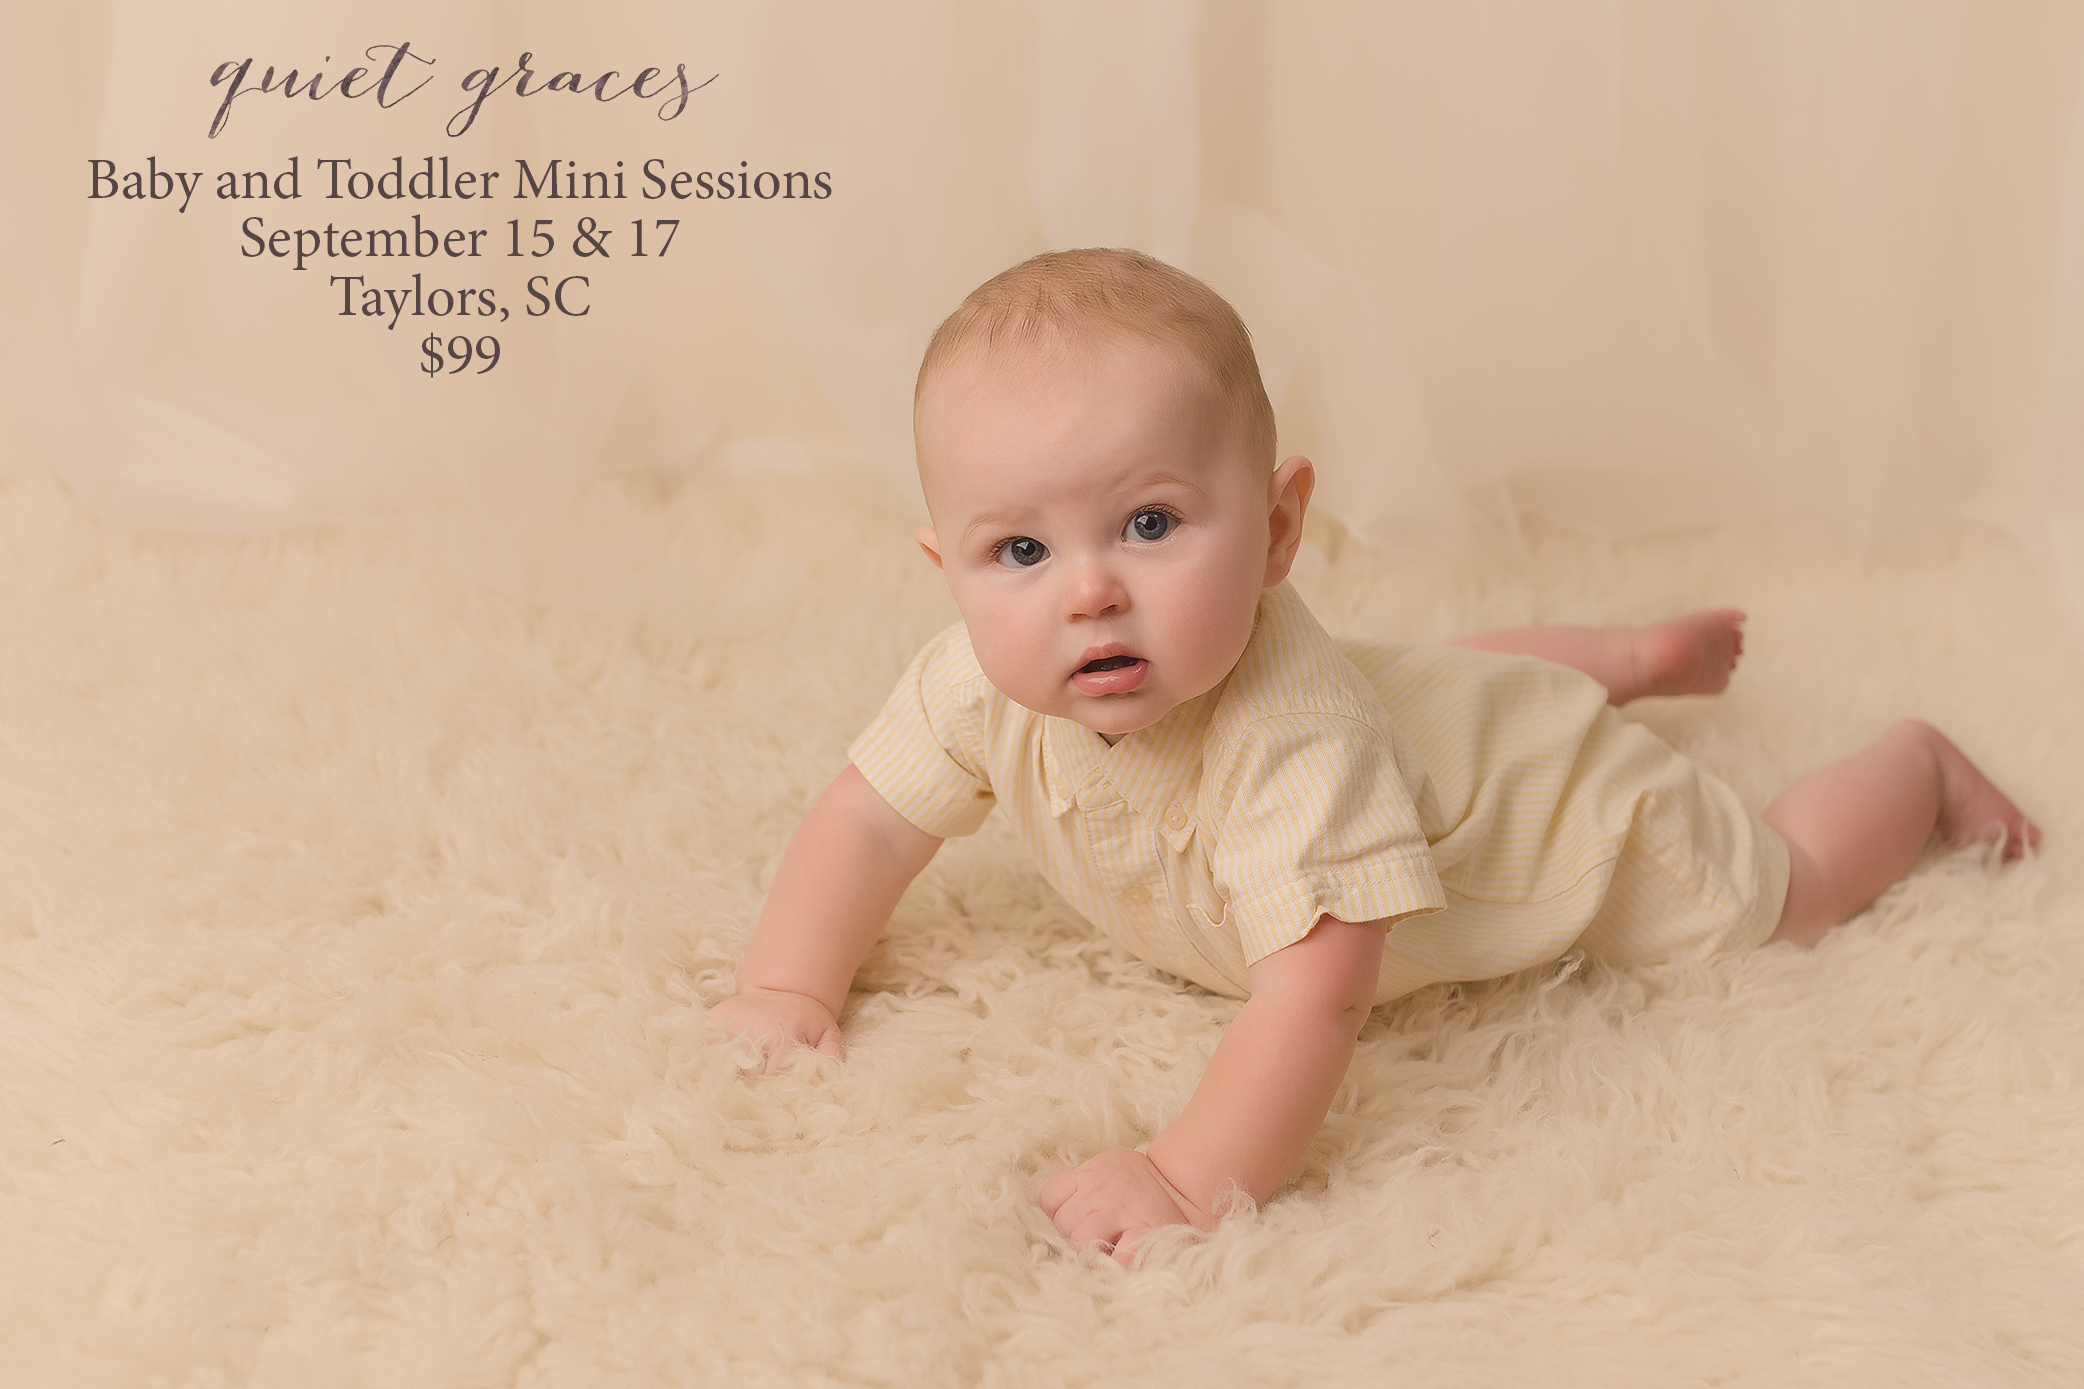 Baby Mini Sessions